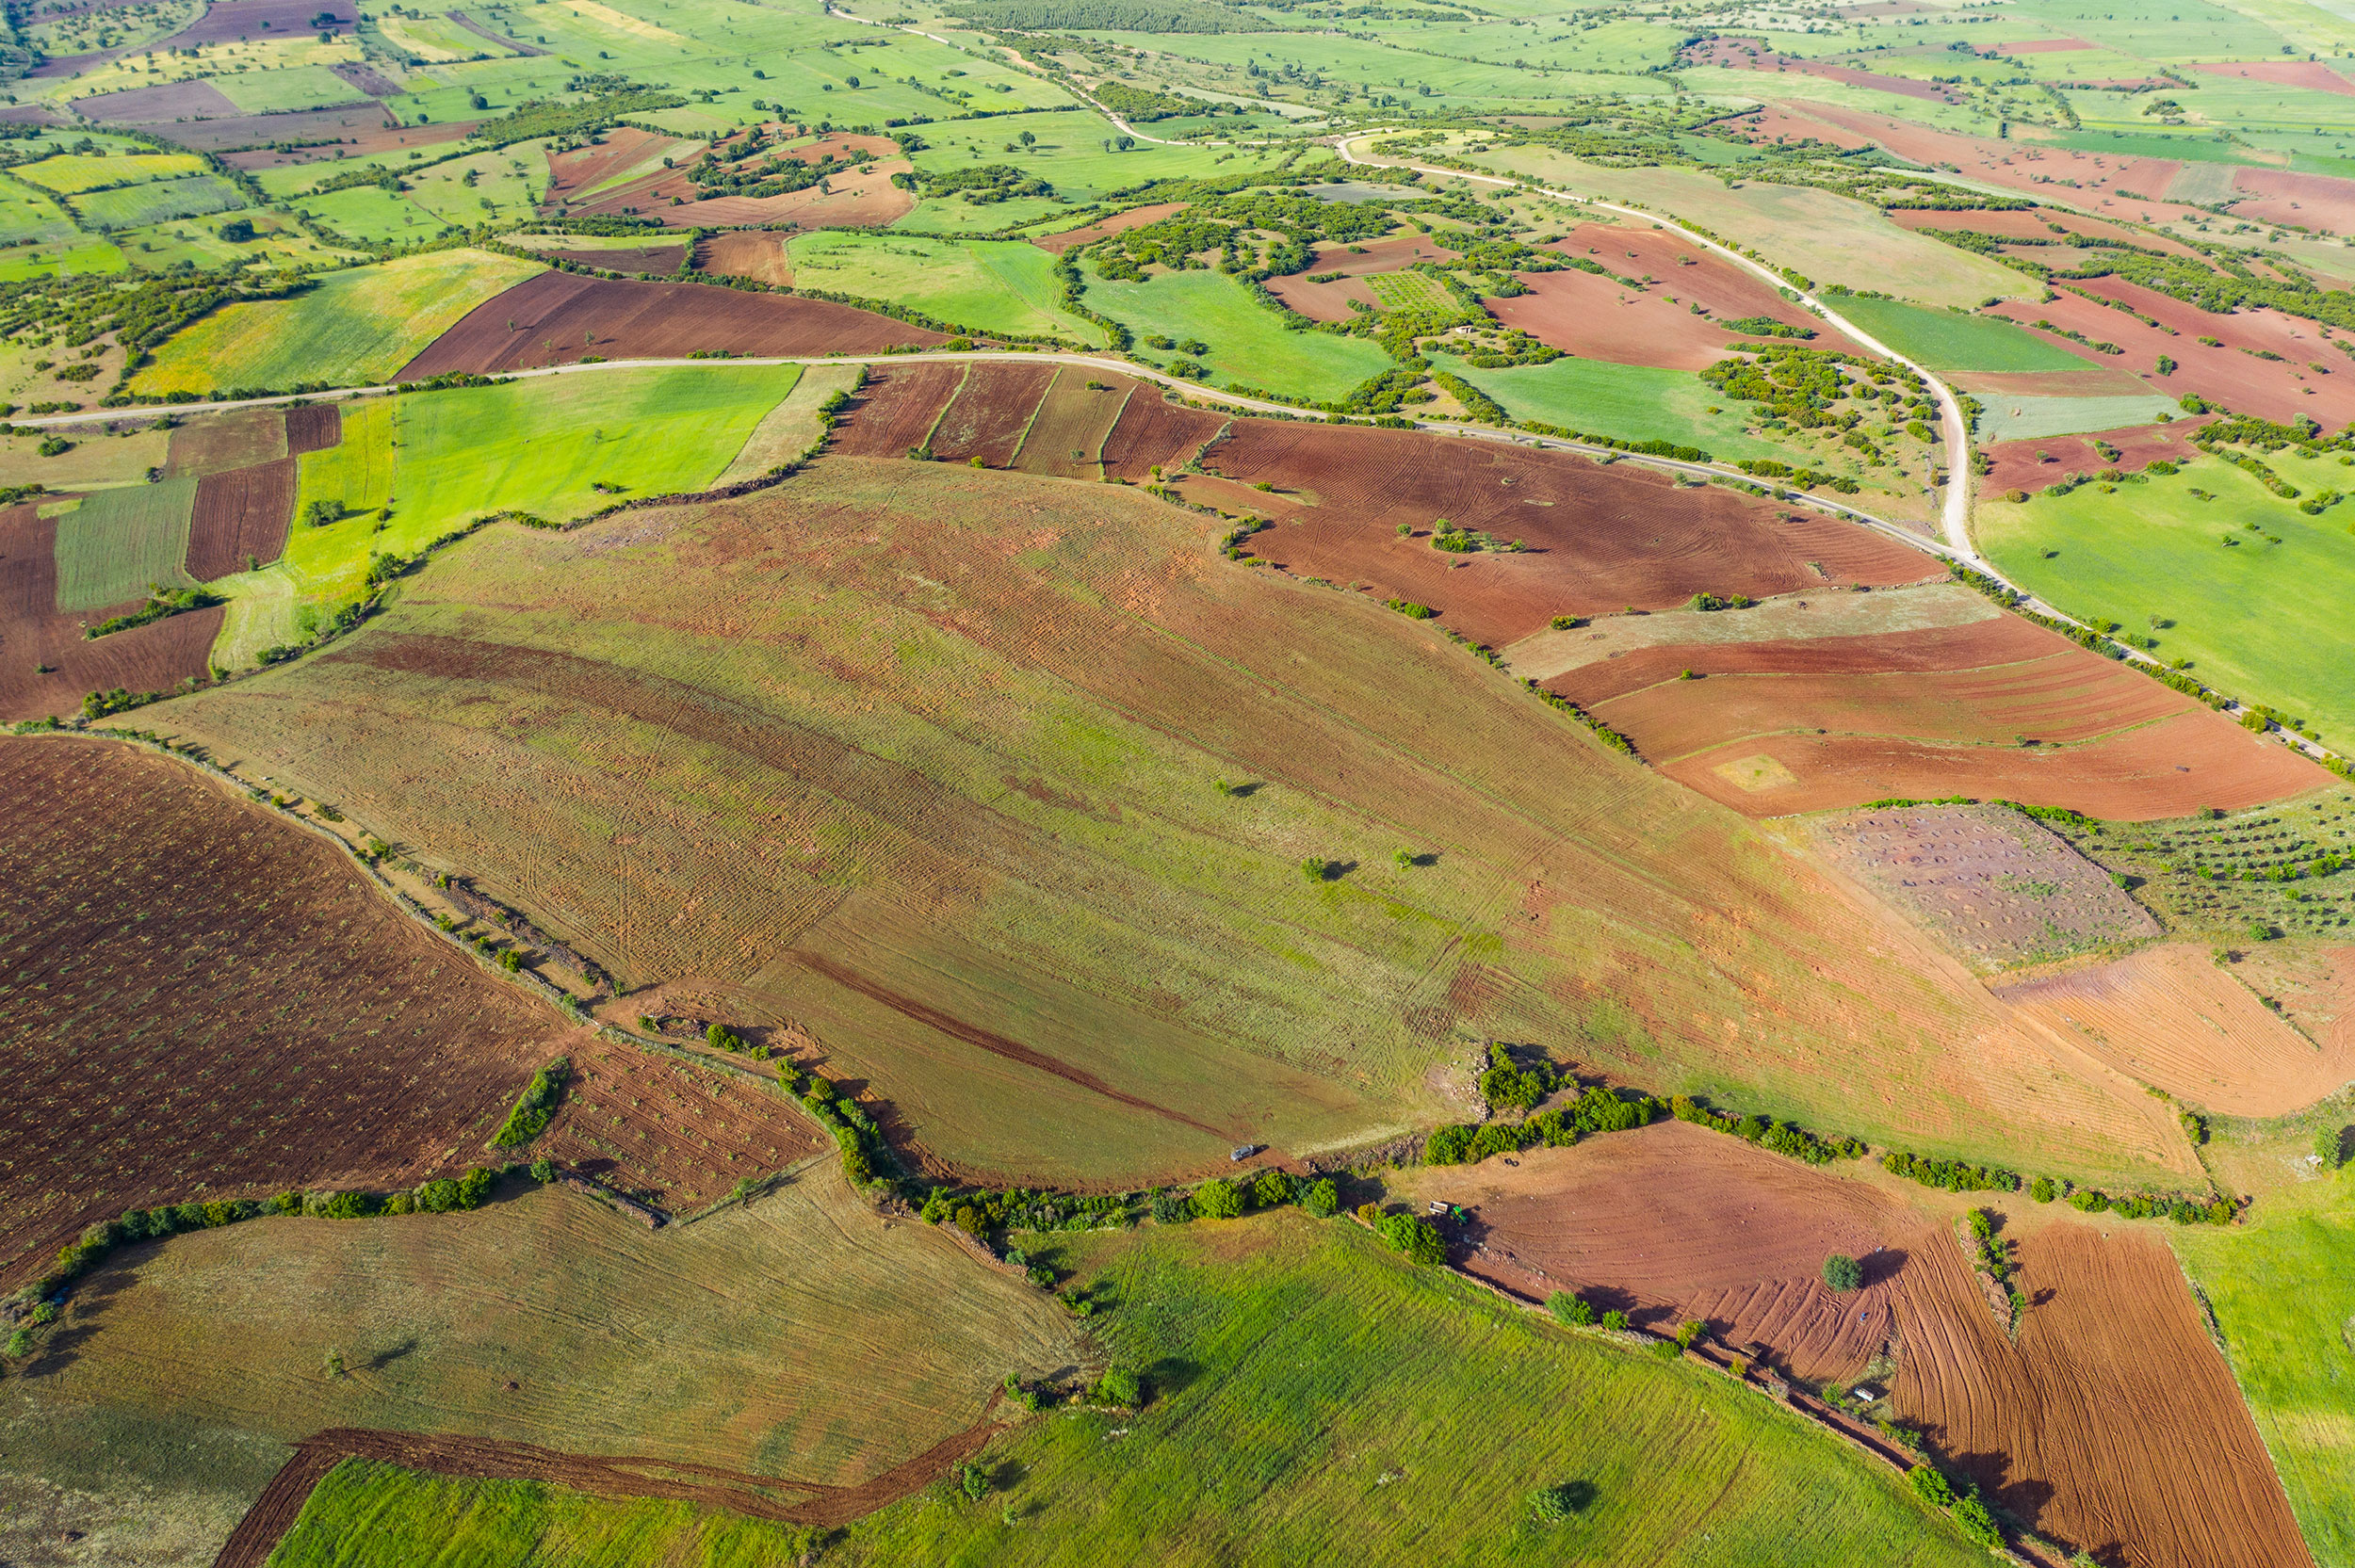 Why Agroforestry is so important for the future of farmlands?